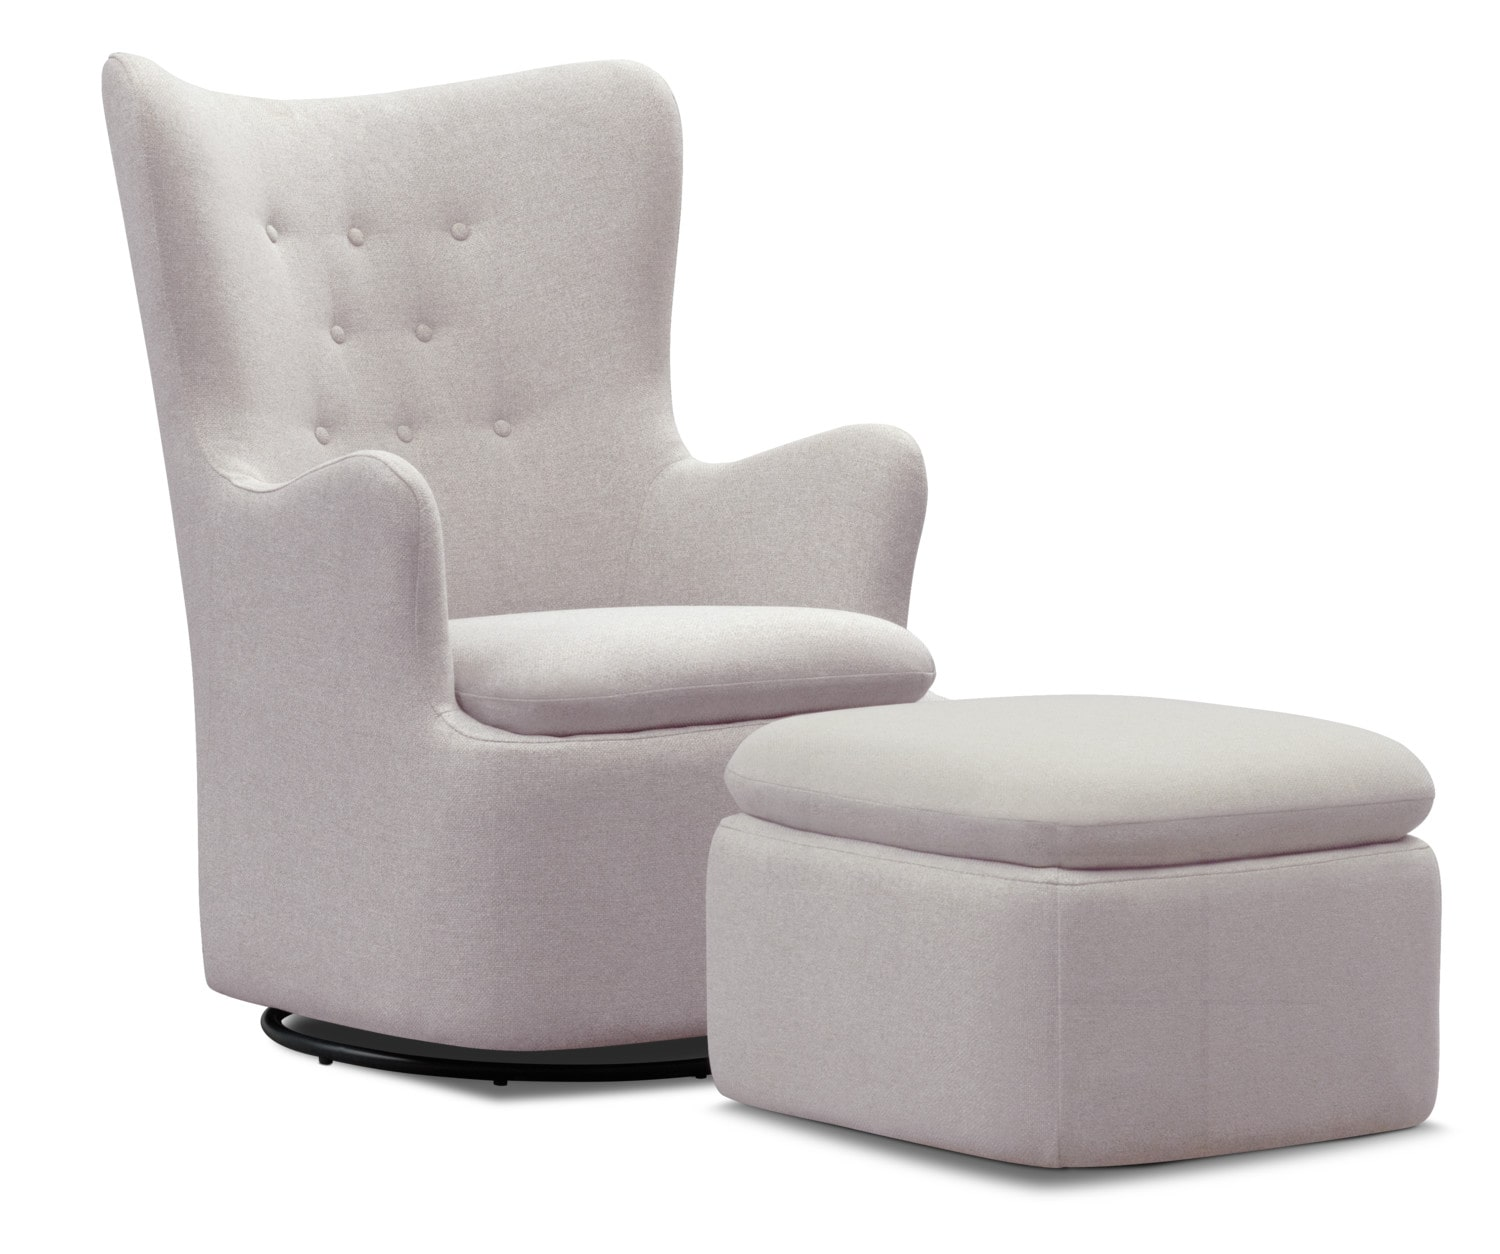 Addie Swivel Chair And Ottoman Set   Gray